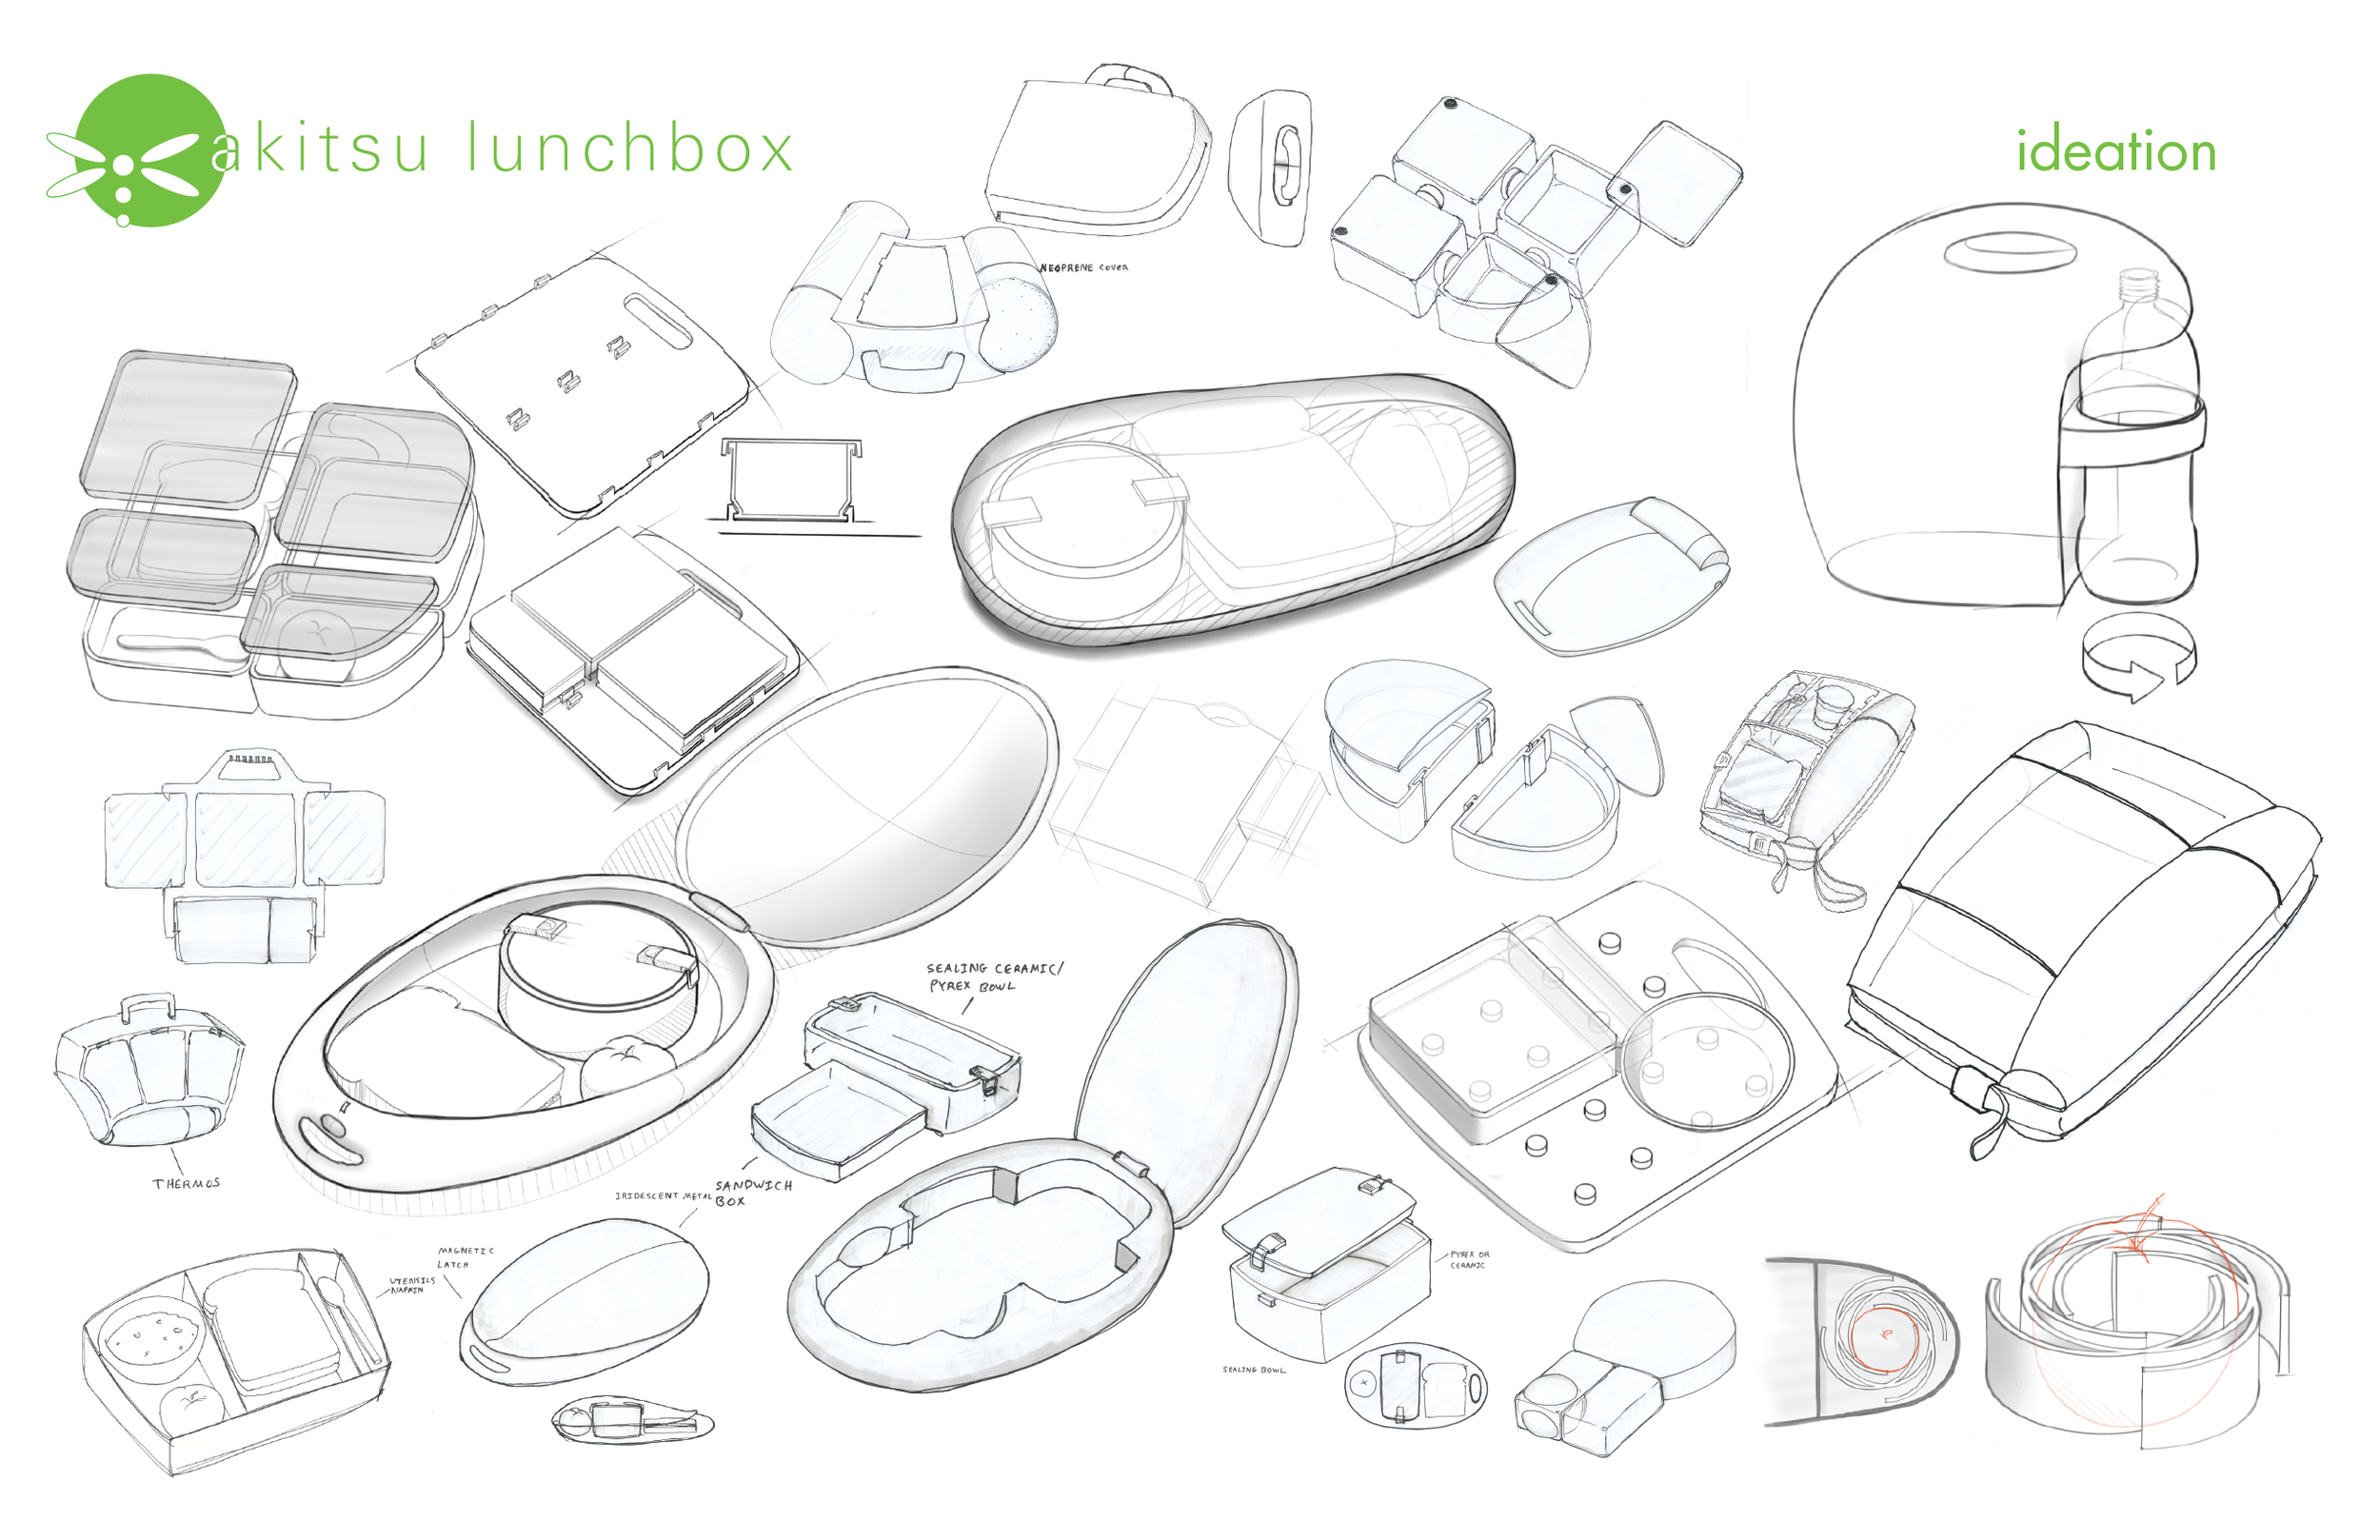 lunchbox-03.png